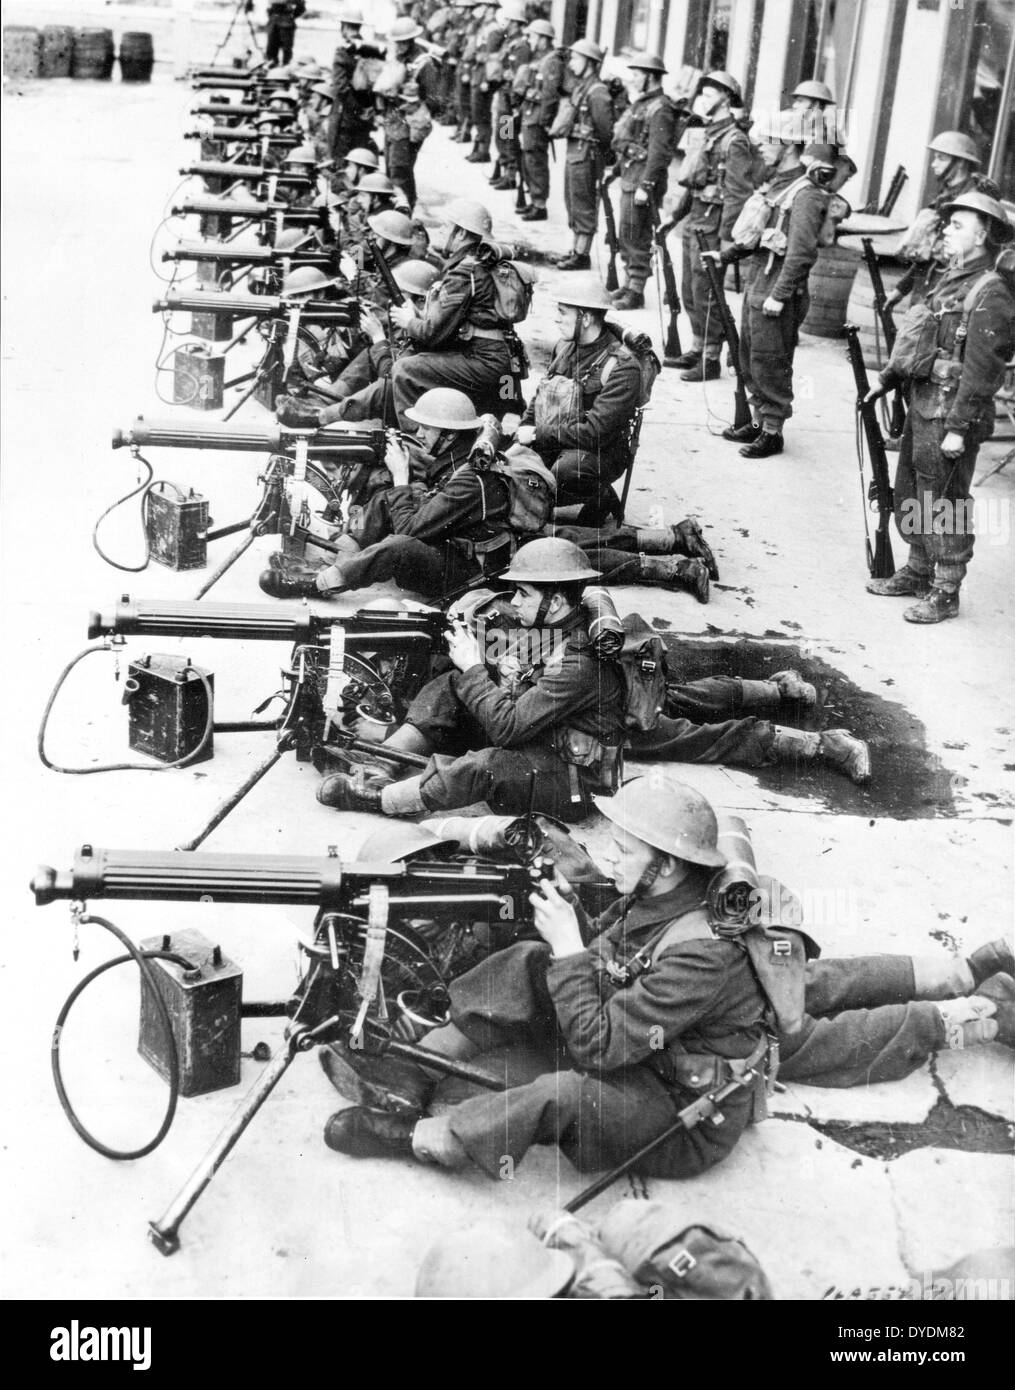 Vickers machine gun teams of the British army during early ww2 Stock Photo